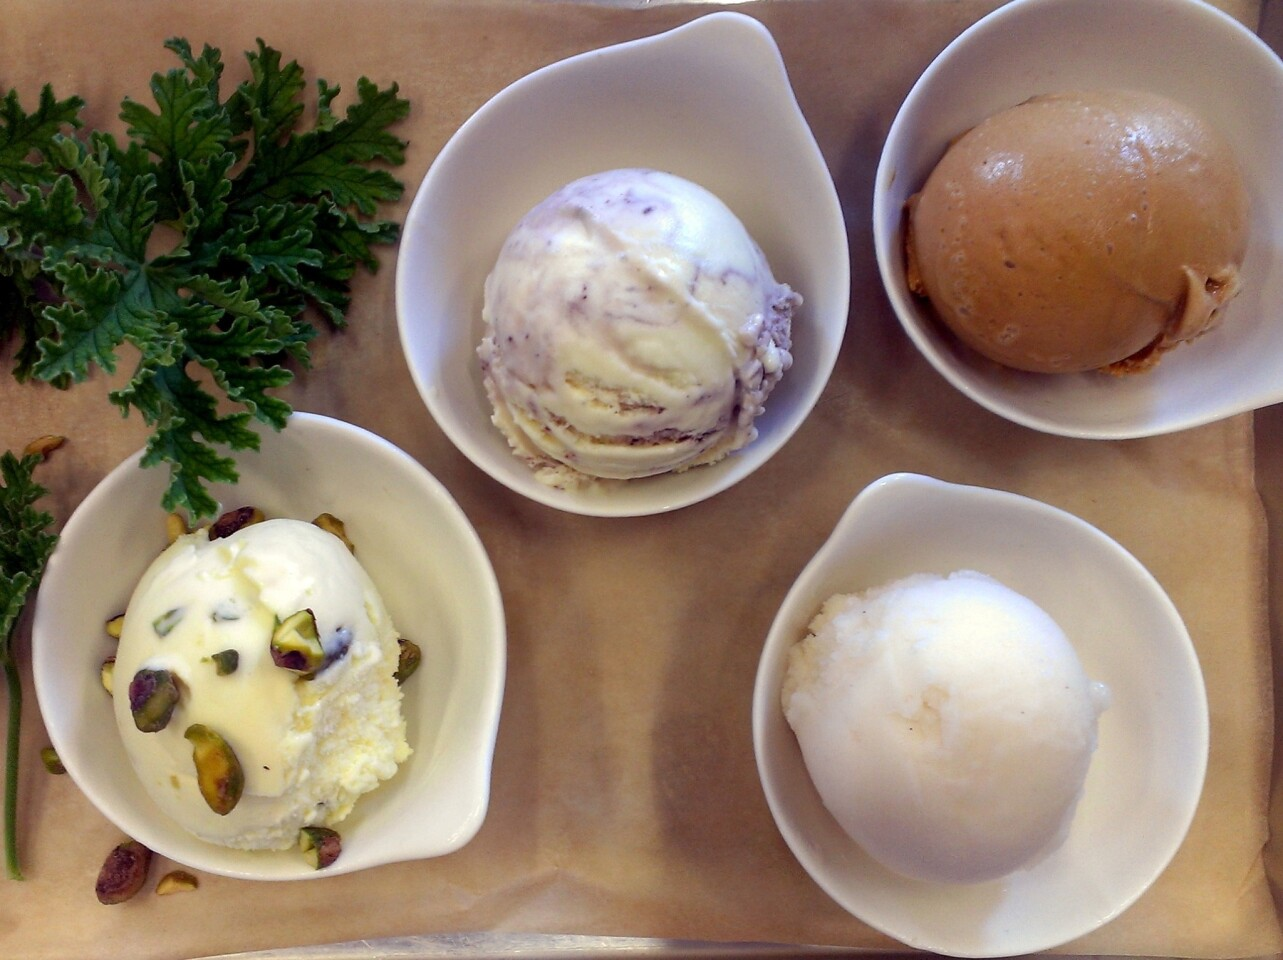 A few of the ice cream flavors at the Sweet Rose Creamery in Santa Monica, from left, include: rose geranium with salty pistachio; creme fraiche with elderberry and pink peppercorn swirl; salted caramel; and pear Riesling sorbet.